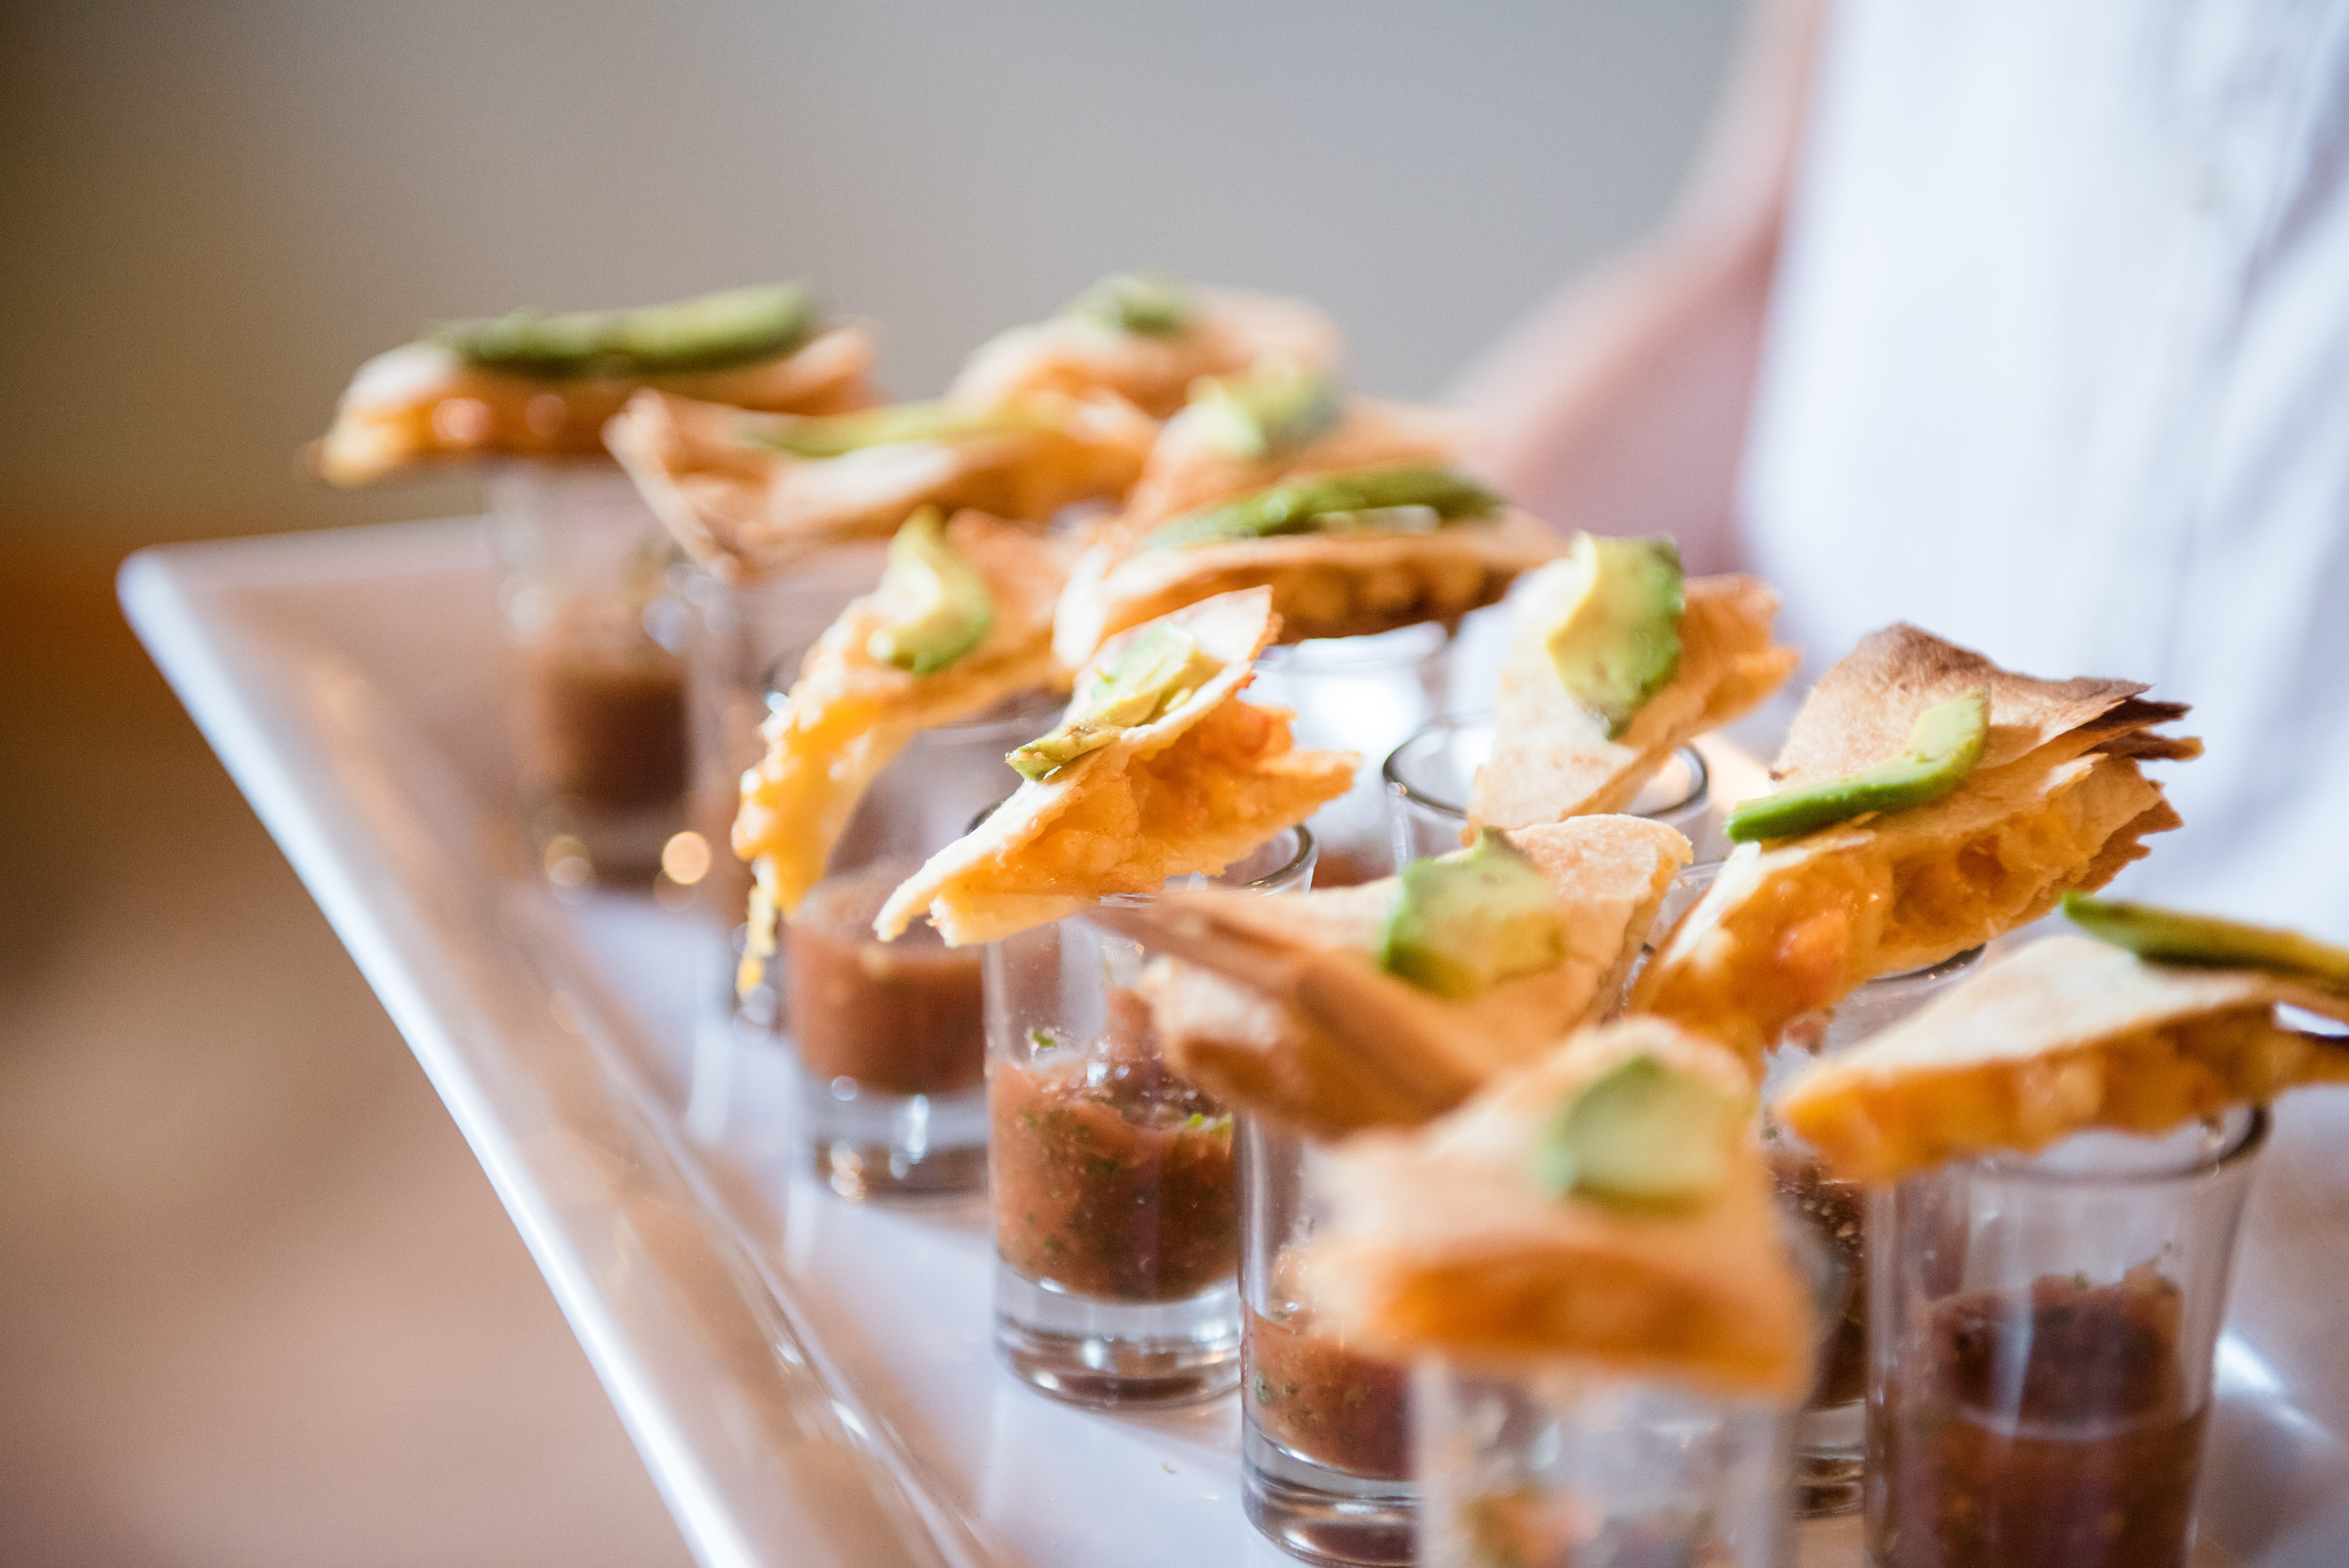 Denver Wedding Caterer Advice: Direct From the Pros